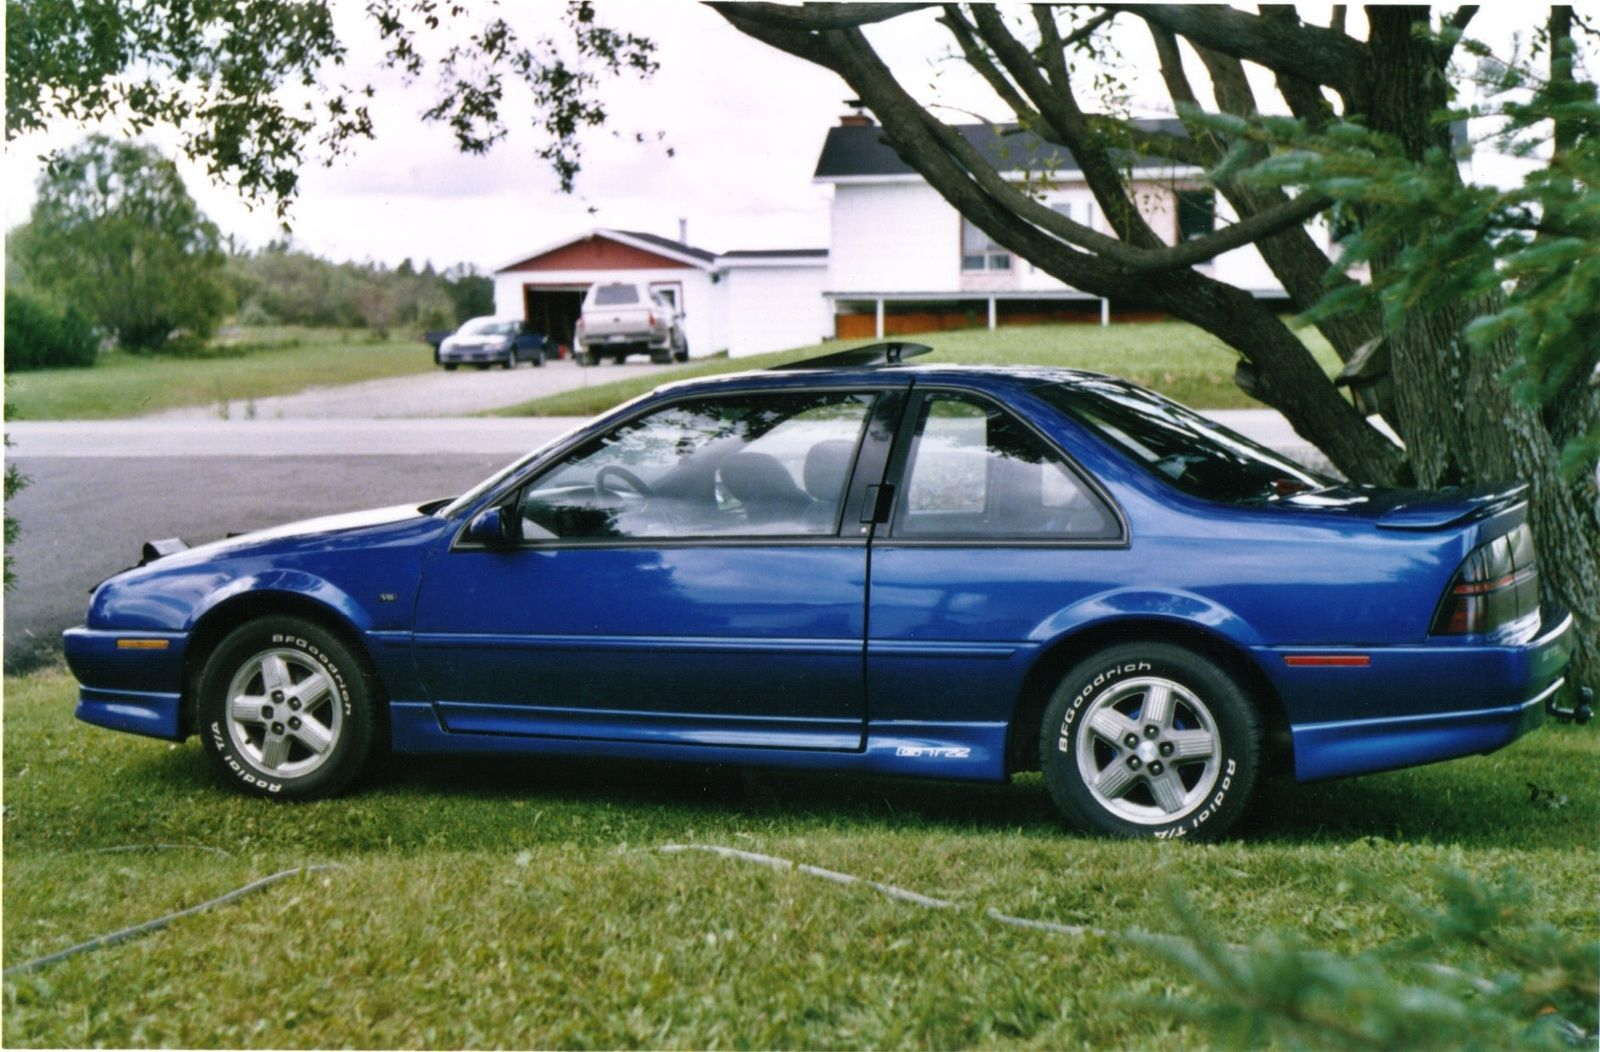 All Chevy 95 chevy beretta : My first car was a 1996 Chevy Beretta. Mine was white with a blue ...